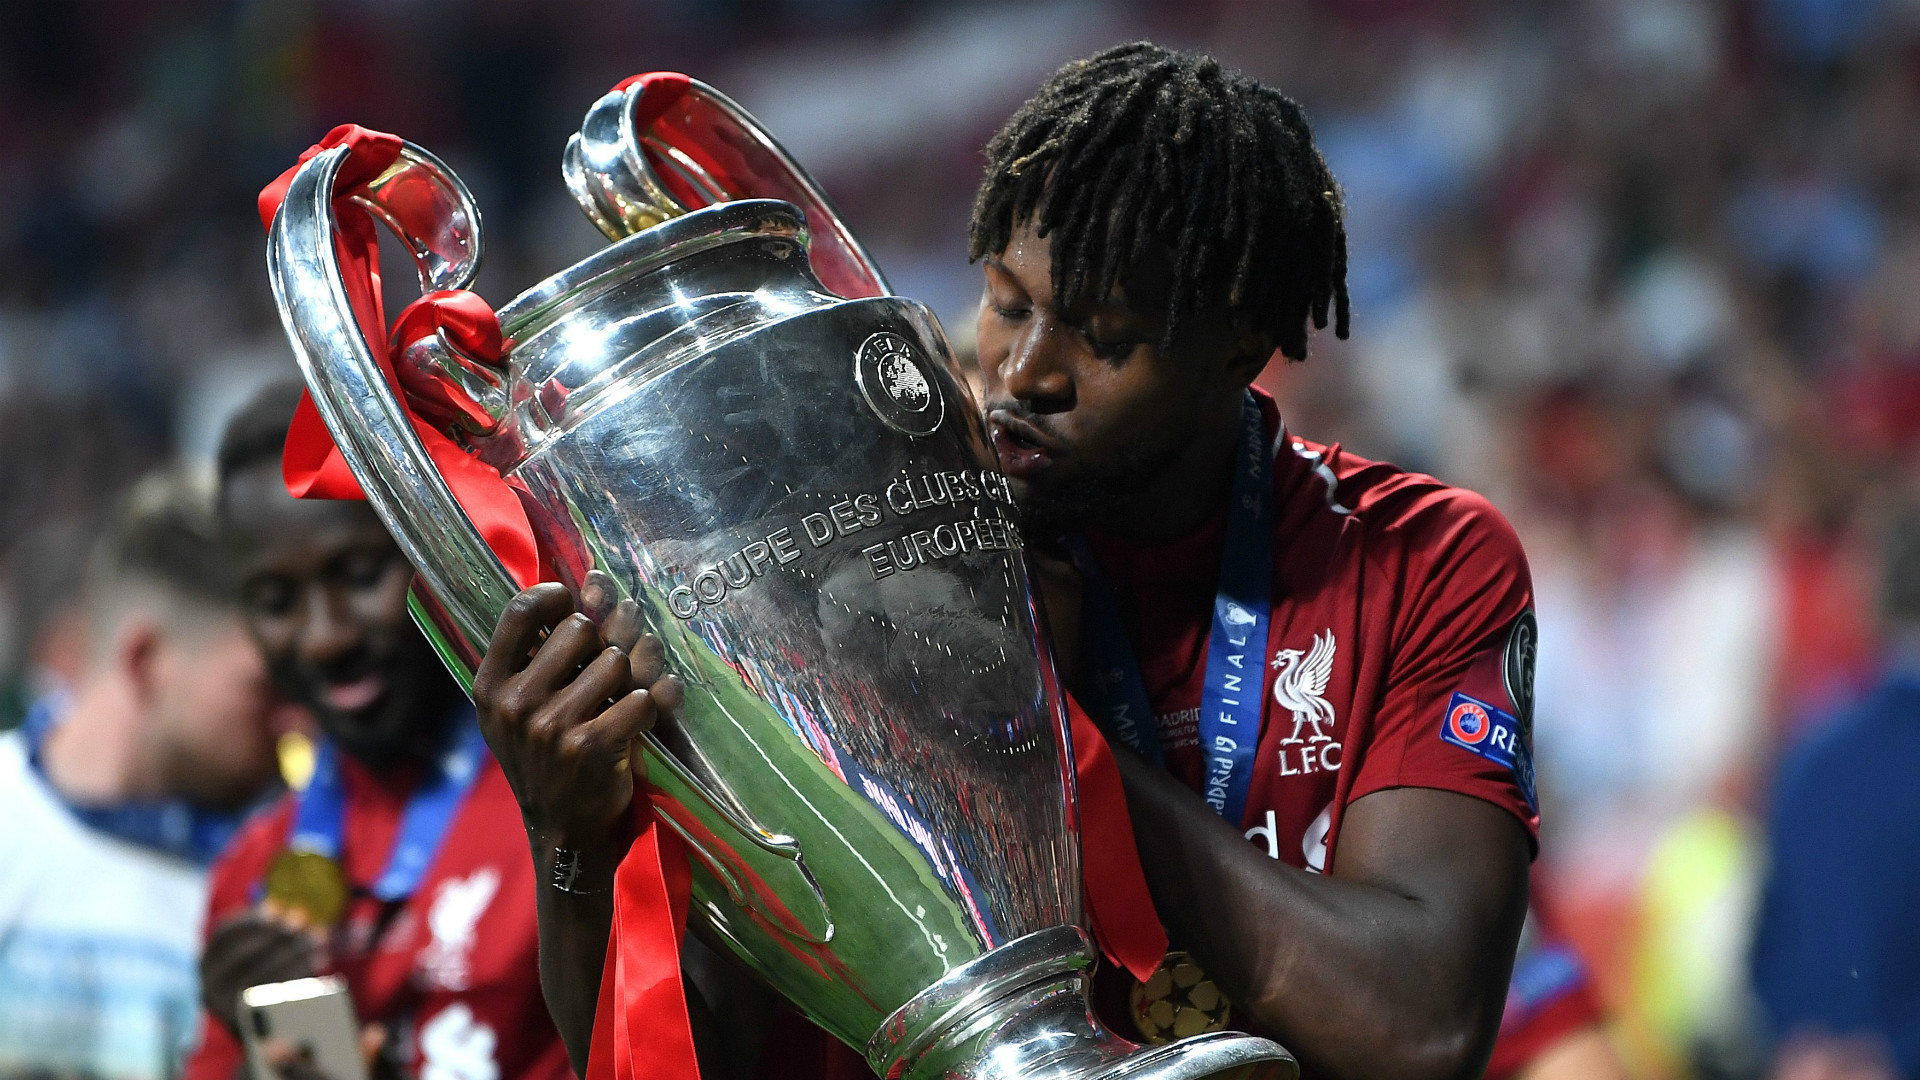 UCL hero Origi signs new Liverpool contract